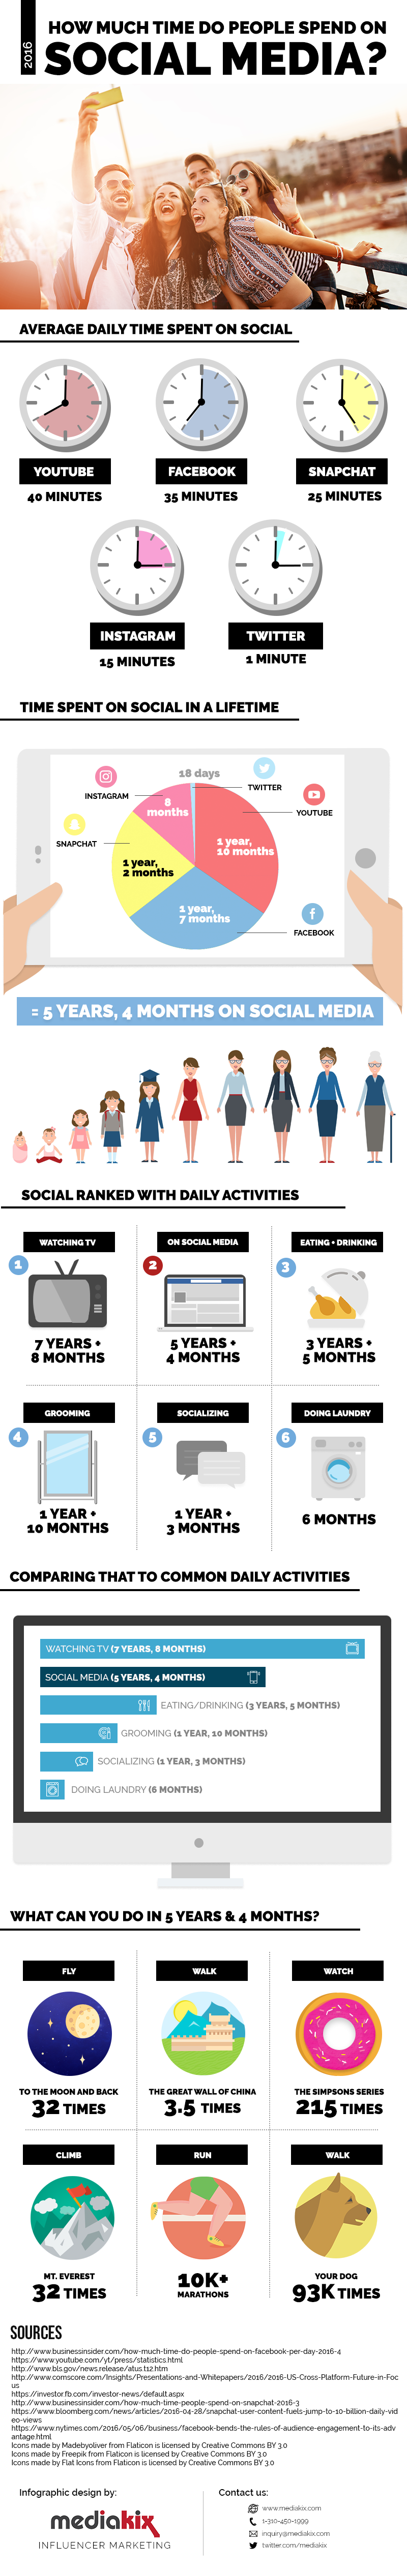 How-Much-Time-Is-Spent-On-Social-Media